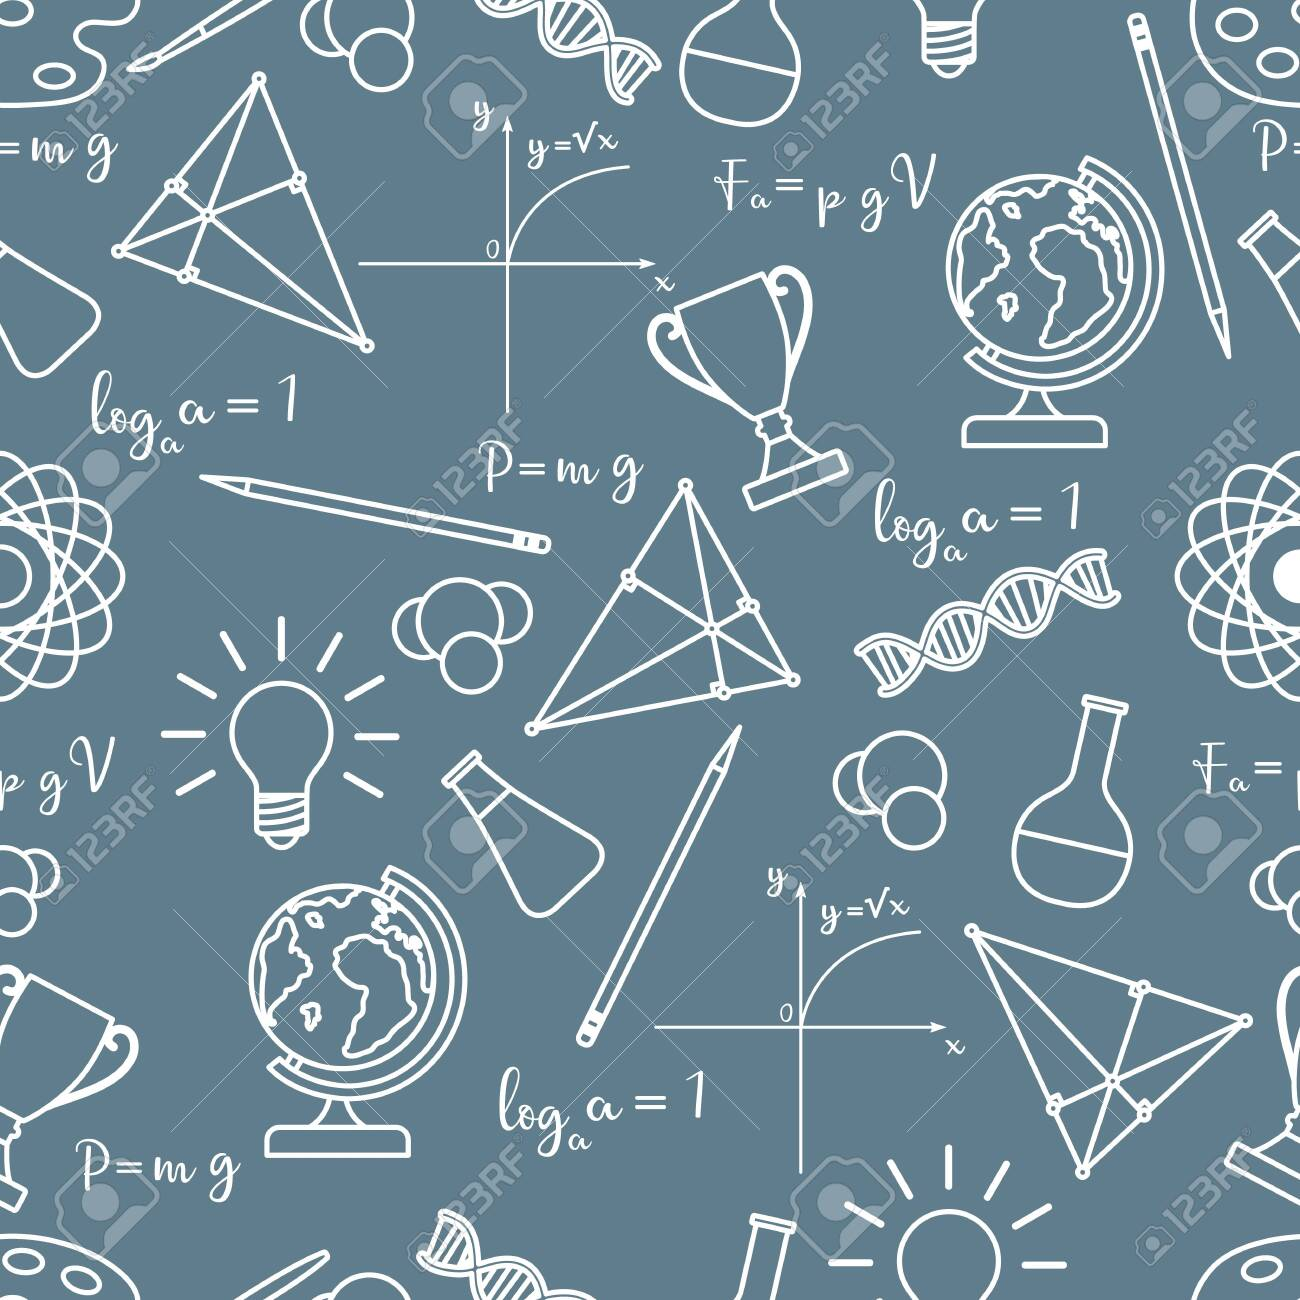 Vector seamless pattern with scientific, education elements: globe, formulas, flasks, molecules, atom, DNA, function graph, pencil, triangle. Design for websites, poster, apps, print. - 124810529